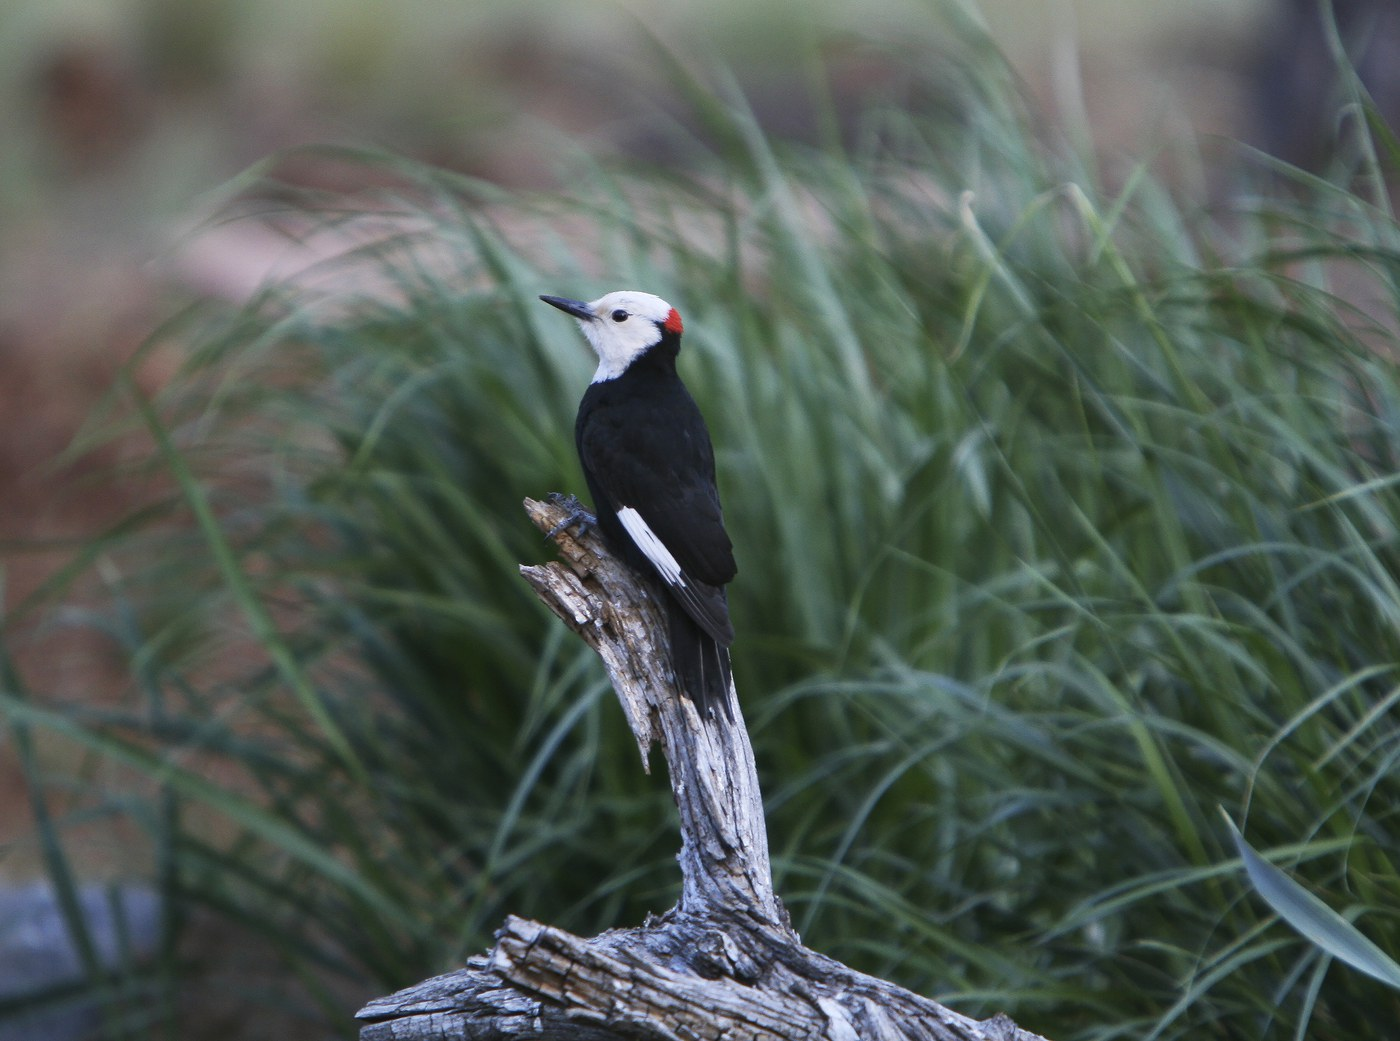 White-headed woodpecker perched on snags. Photo: Dick Tipton